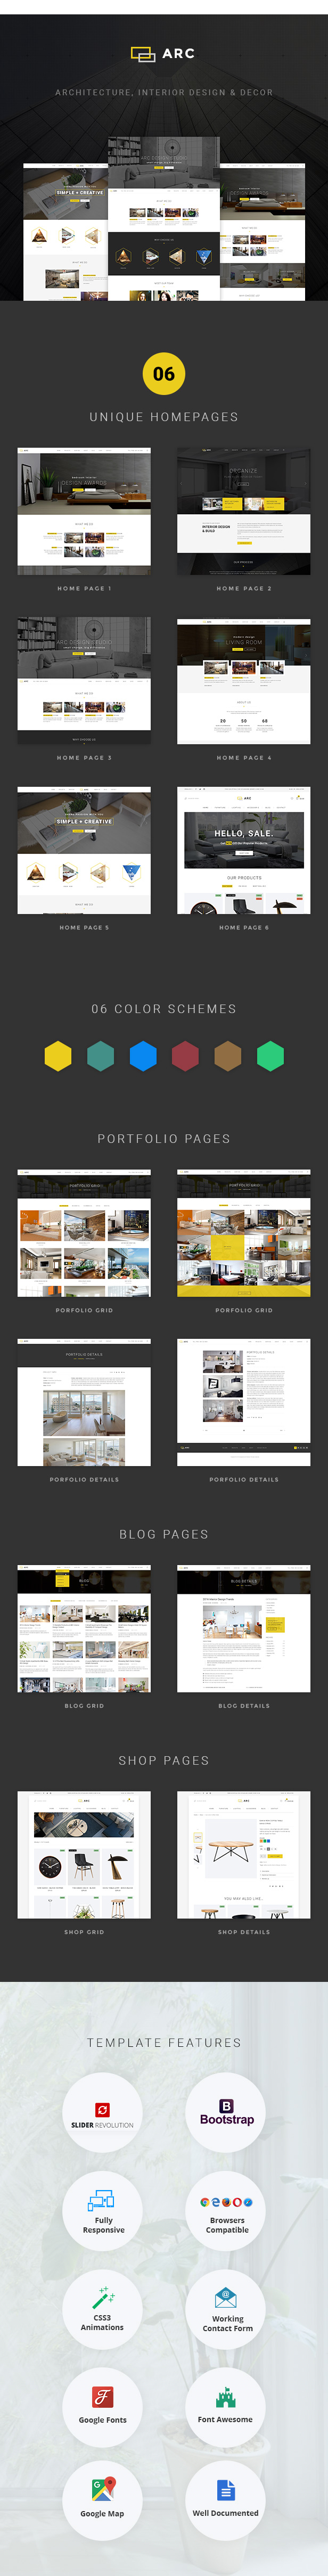 ARC - Interior Design, Decor, Architecture Business Template